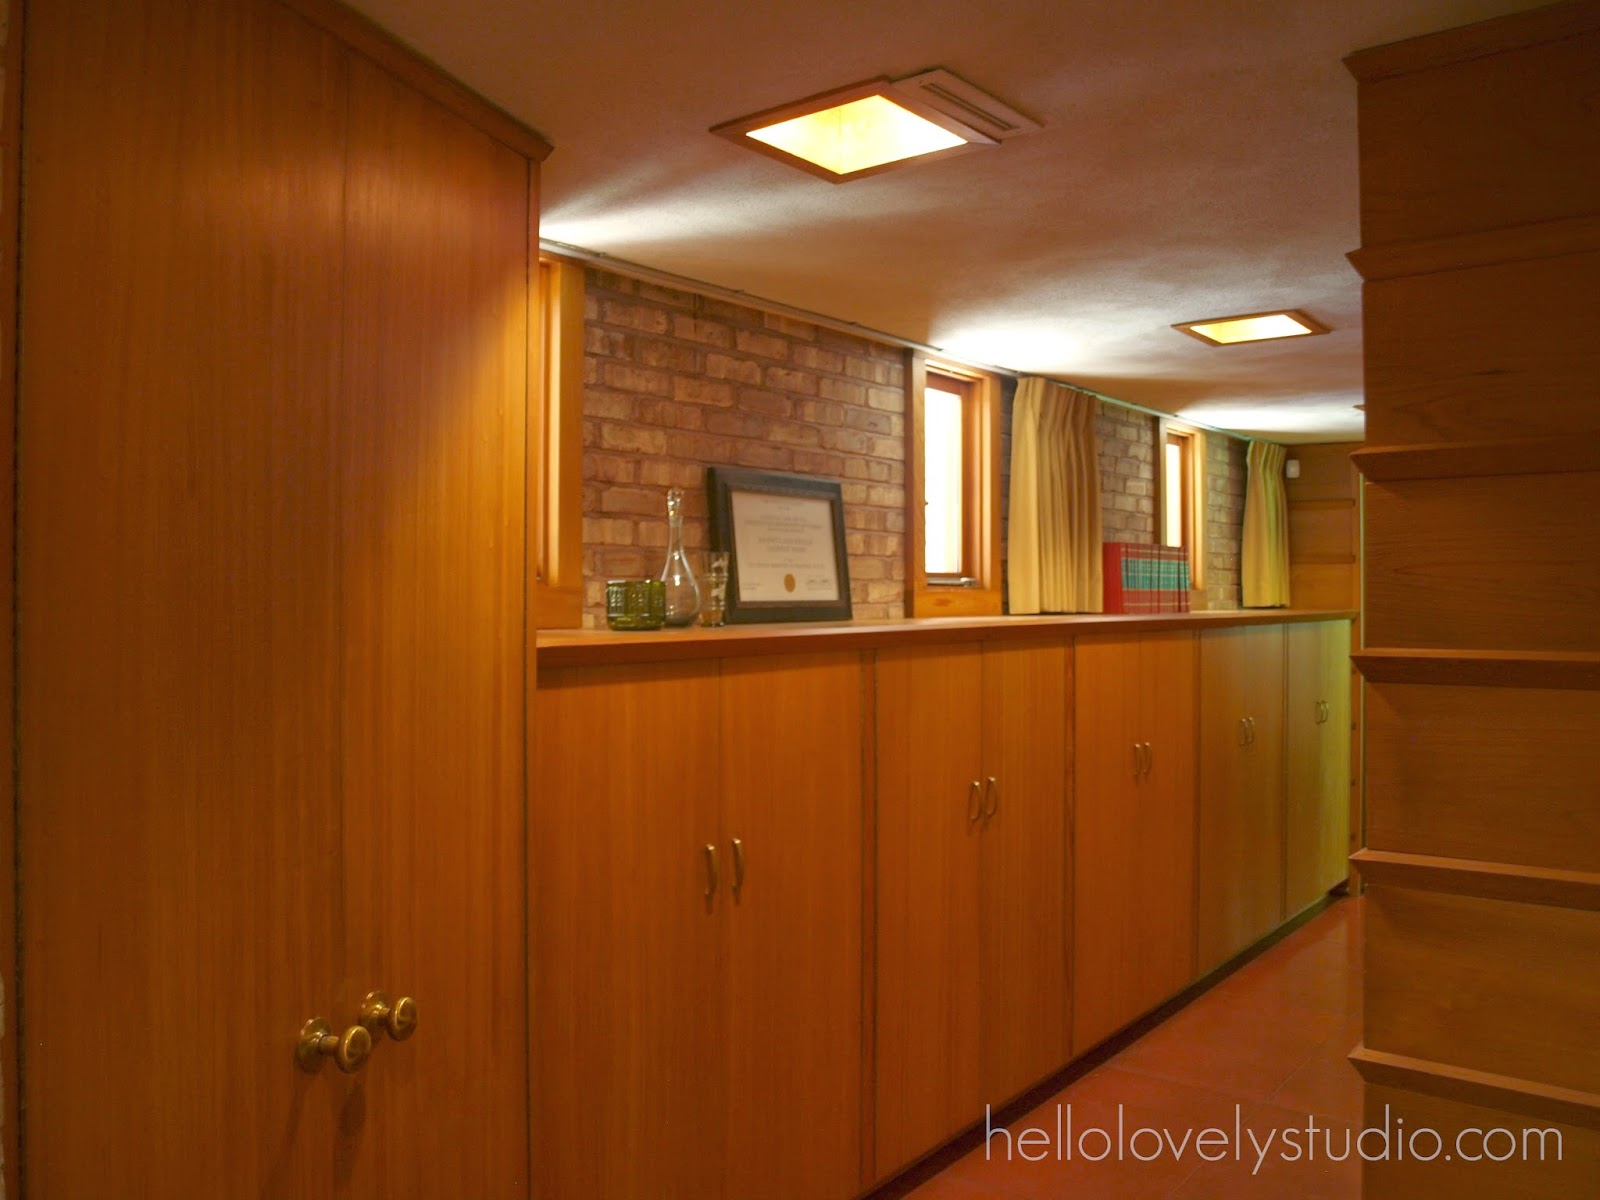 Built-in storage and brick wall. Frank Lloyd Wright Laurent House designed for owner Kenneth Laurent on Spring Brook Road in Rockford/ Designed to be wheelchair-accessible. #flw #franklloydwrighthouse #midcenturymodernarchitecture